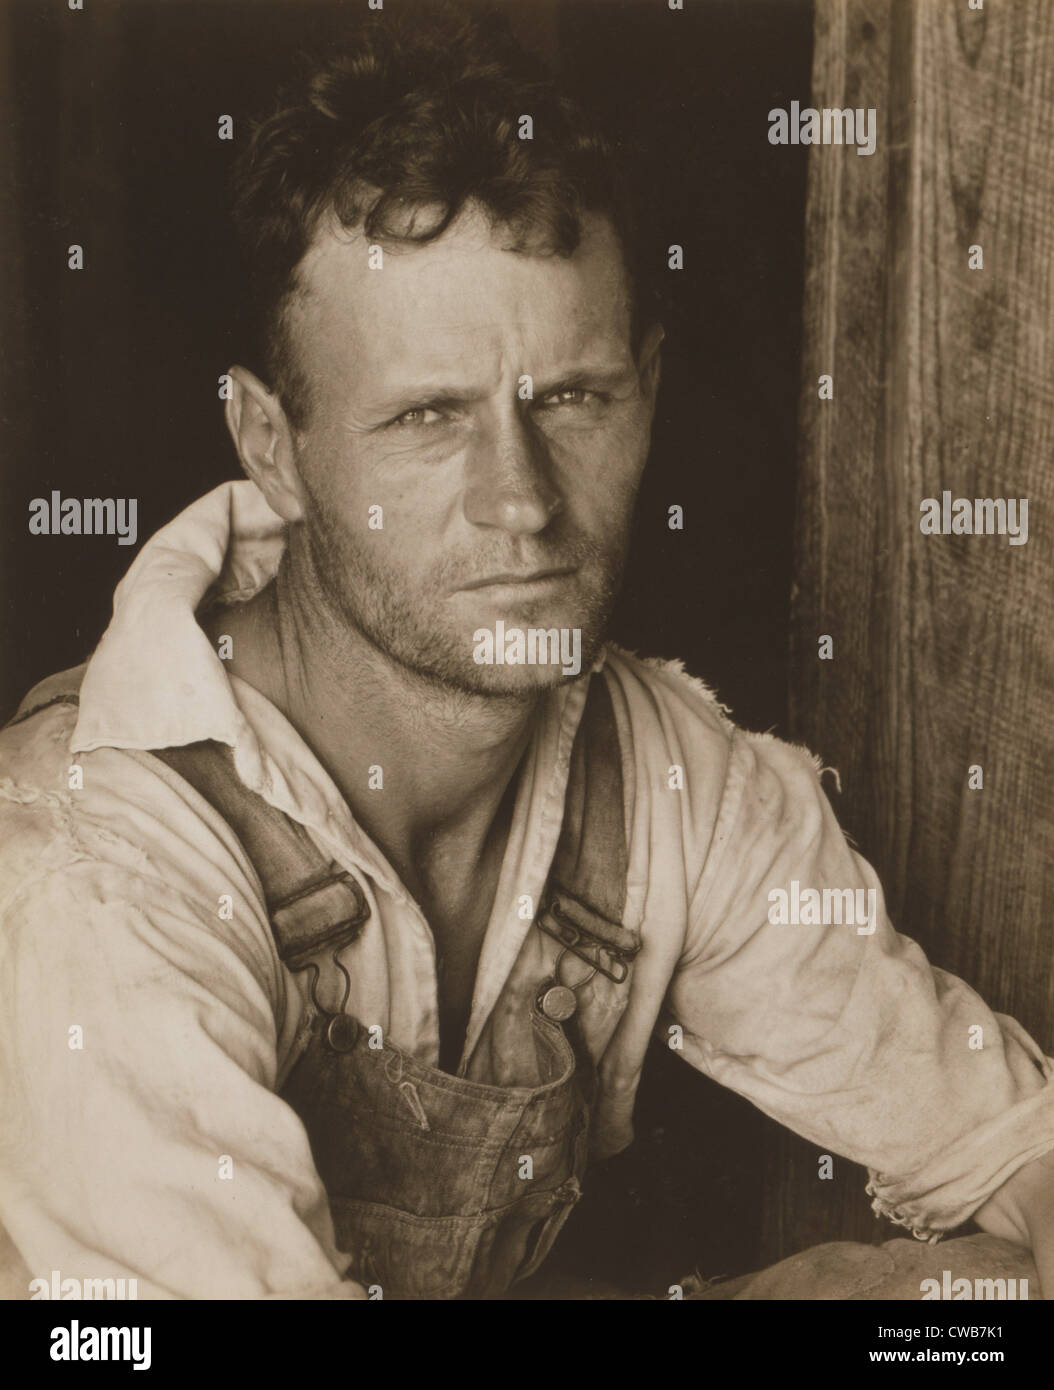 Floyd Burroughs, sharecropper. Hale County, Alabama. Published in the book, 'Let Us Now Praise Famous Men'. - Stock Image